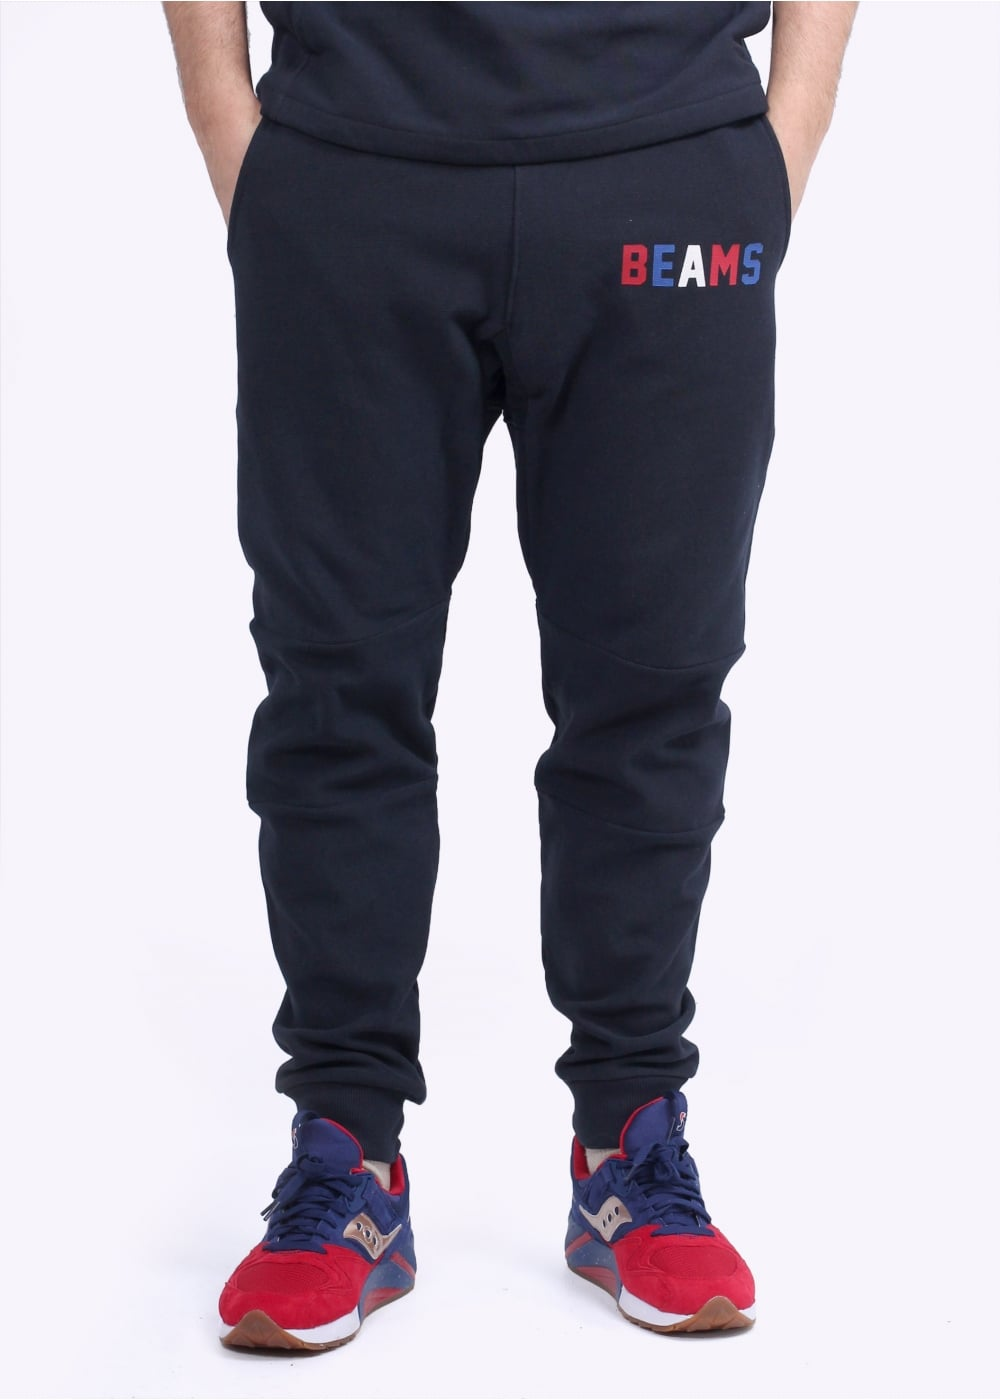 3efa0ecbae25 Champion x BEAMS Sweatpants - Navy - Triads Mens from Triads UK